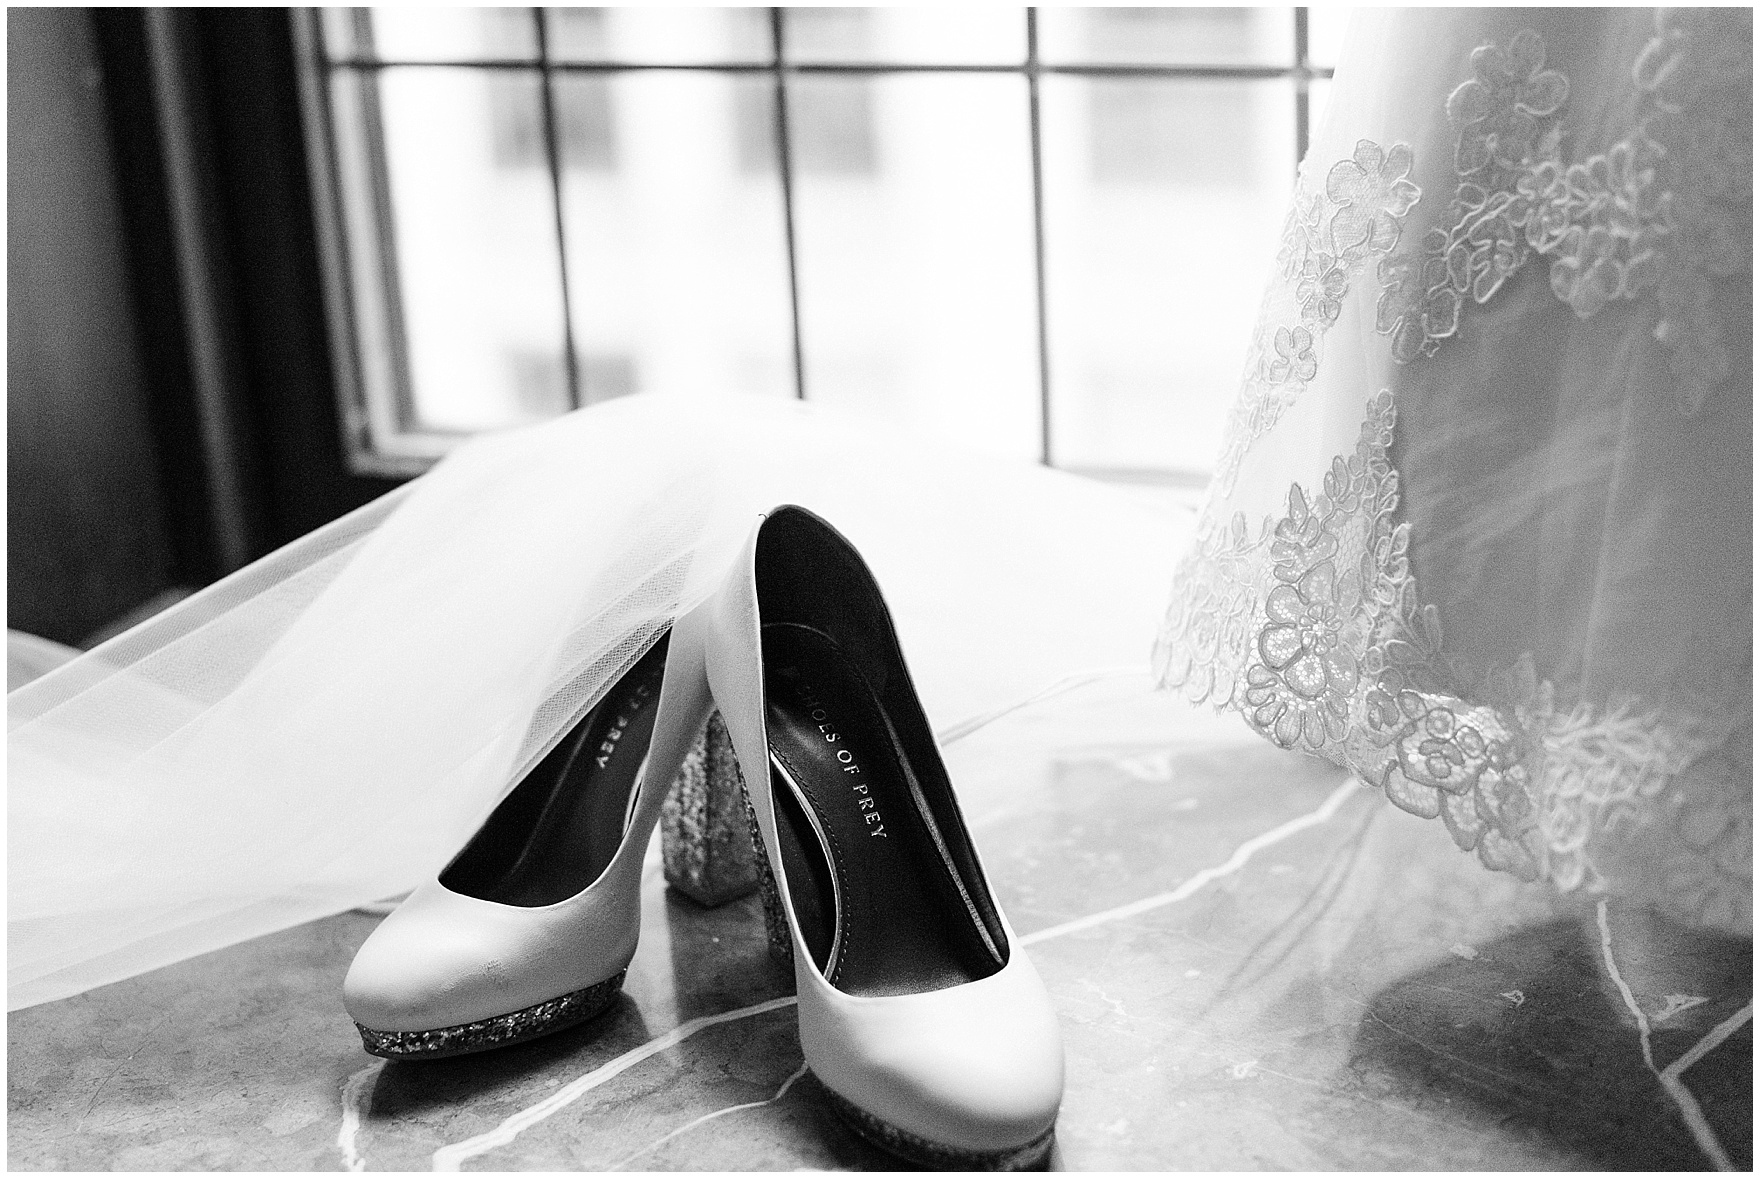 Details of wedding shoes and a veil for a University Club of Chicago wedding.